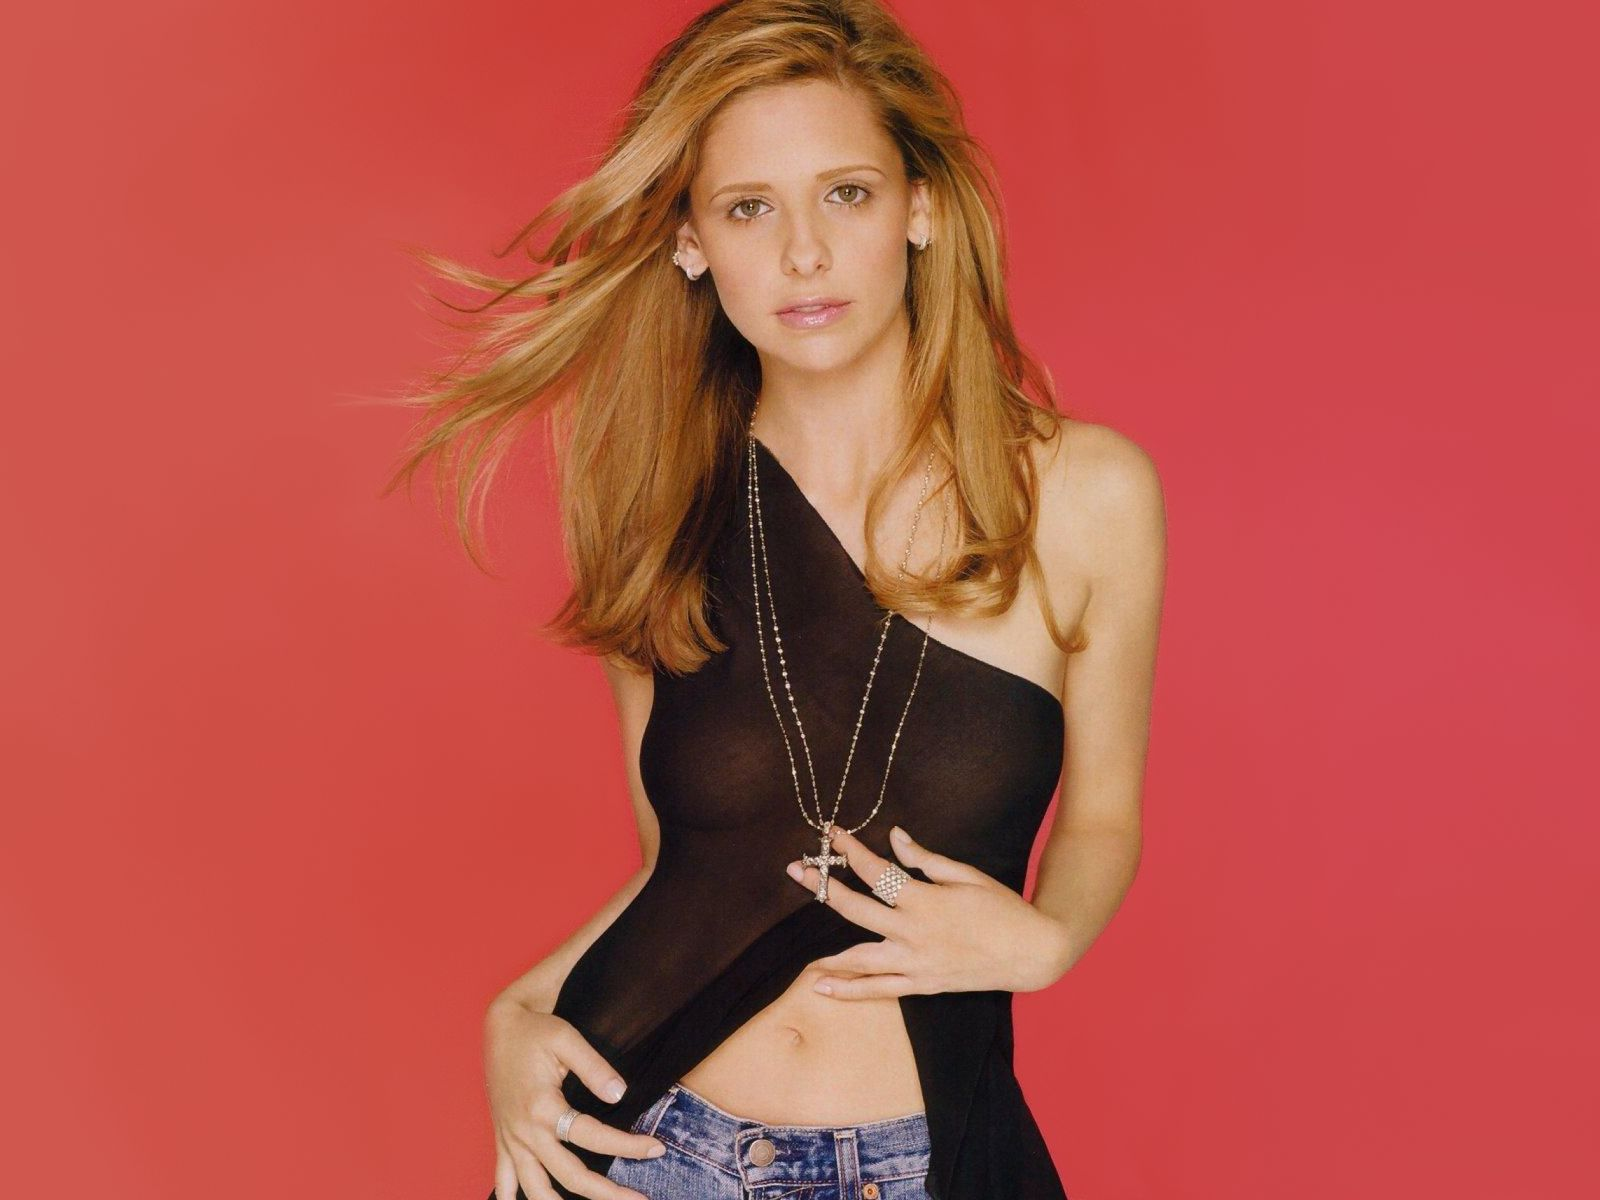 Sarah Michelle Gellar Profile |Photo |Bio |Bra Size | Hot Starz